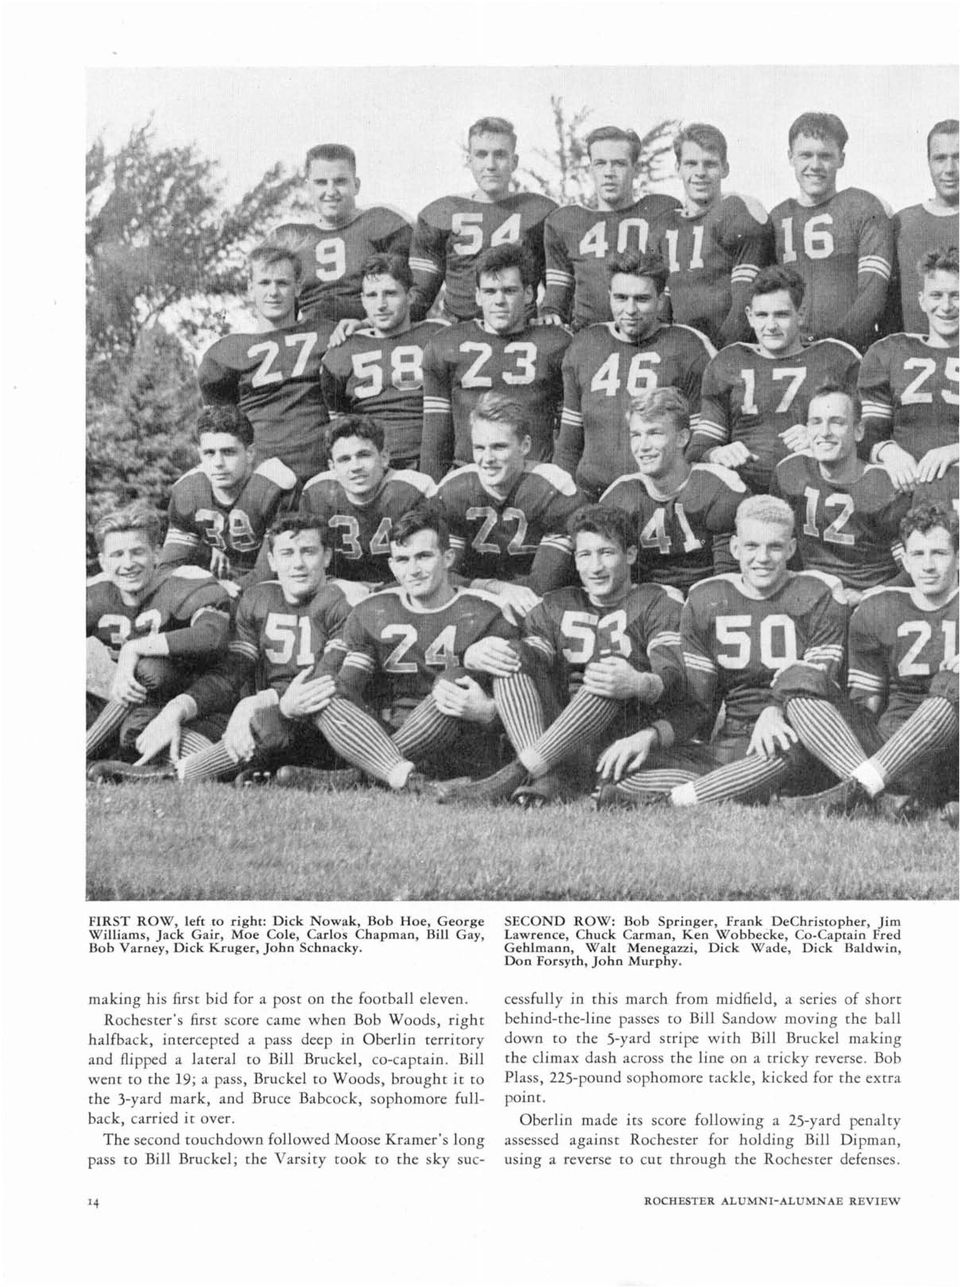 Rochester's first score came when Bob Woods, right halfback, intercepted a pass deep in Oberlin territory and flipped a lateral to Bill Bruckel, co-captain.